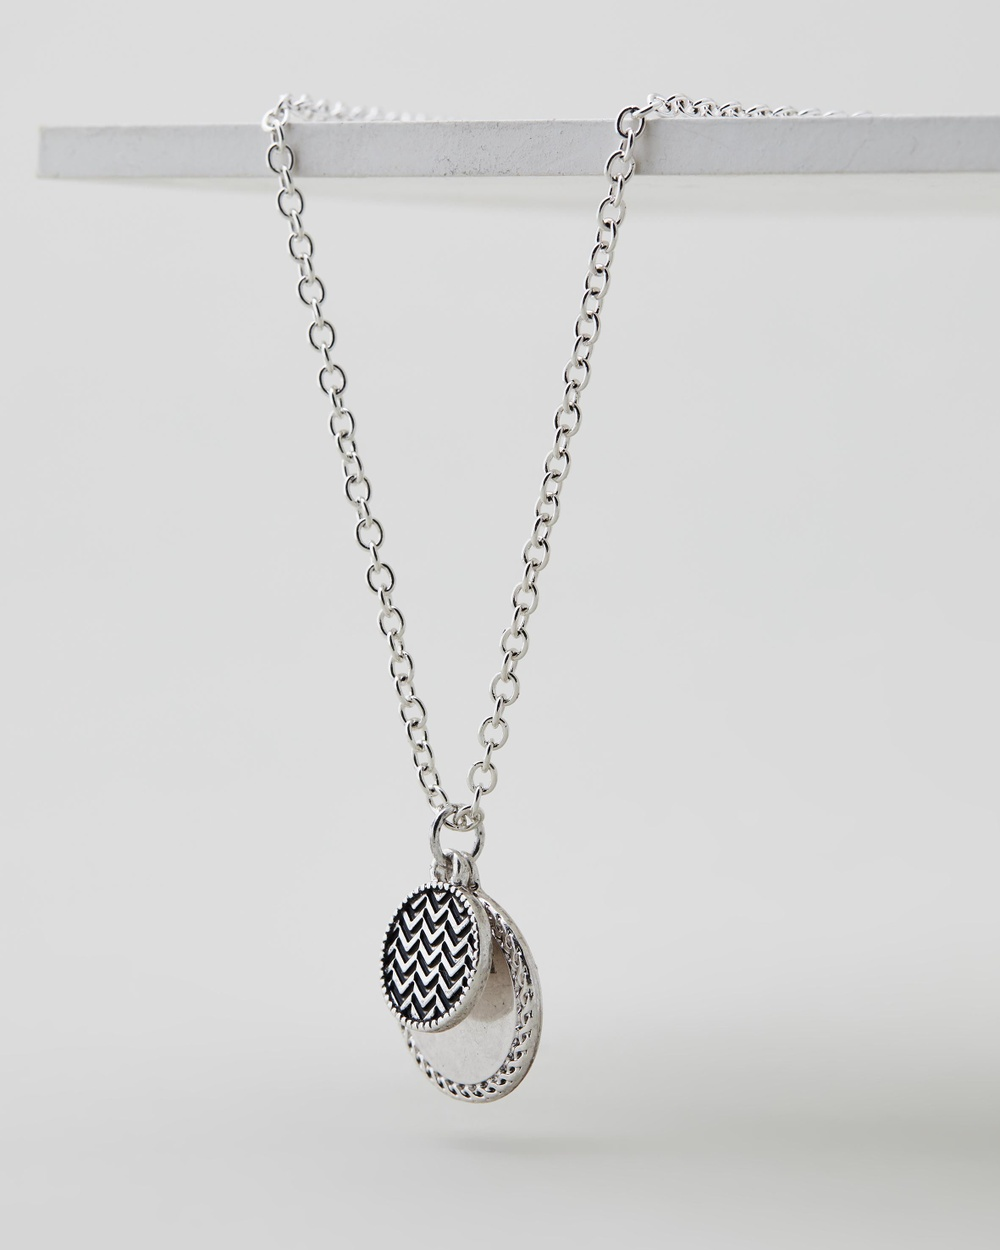 Icon Brand Double Patterned Coin Necklace Jewellery Silver